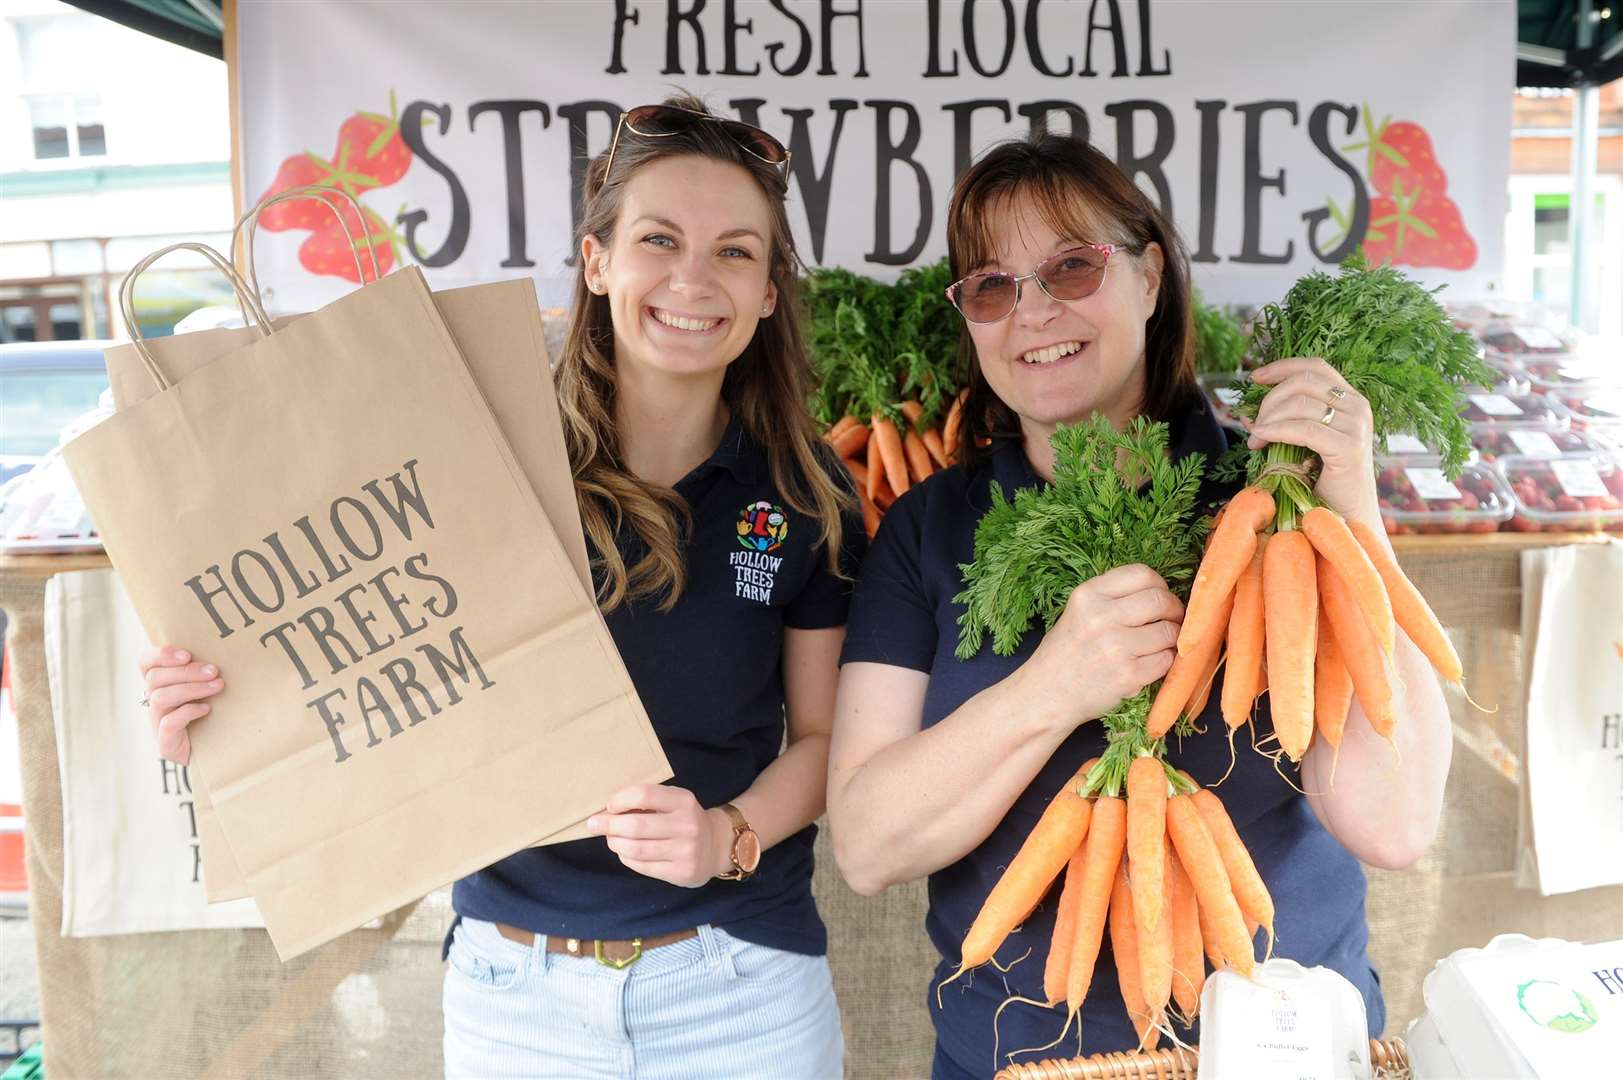 Taste of Sudbury food festival 2019..Pictured: Lauren Stephensons and Sally Bendall from Hollow trees Farm on their stall...PICTURE: Mecha Morton... (12037068)